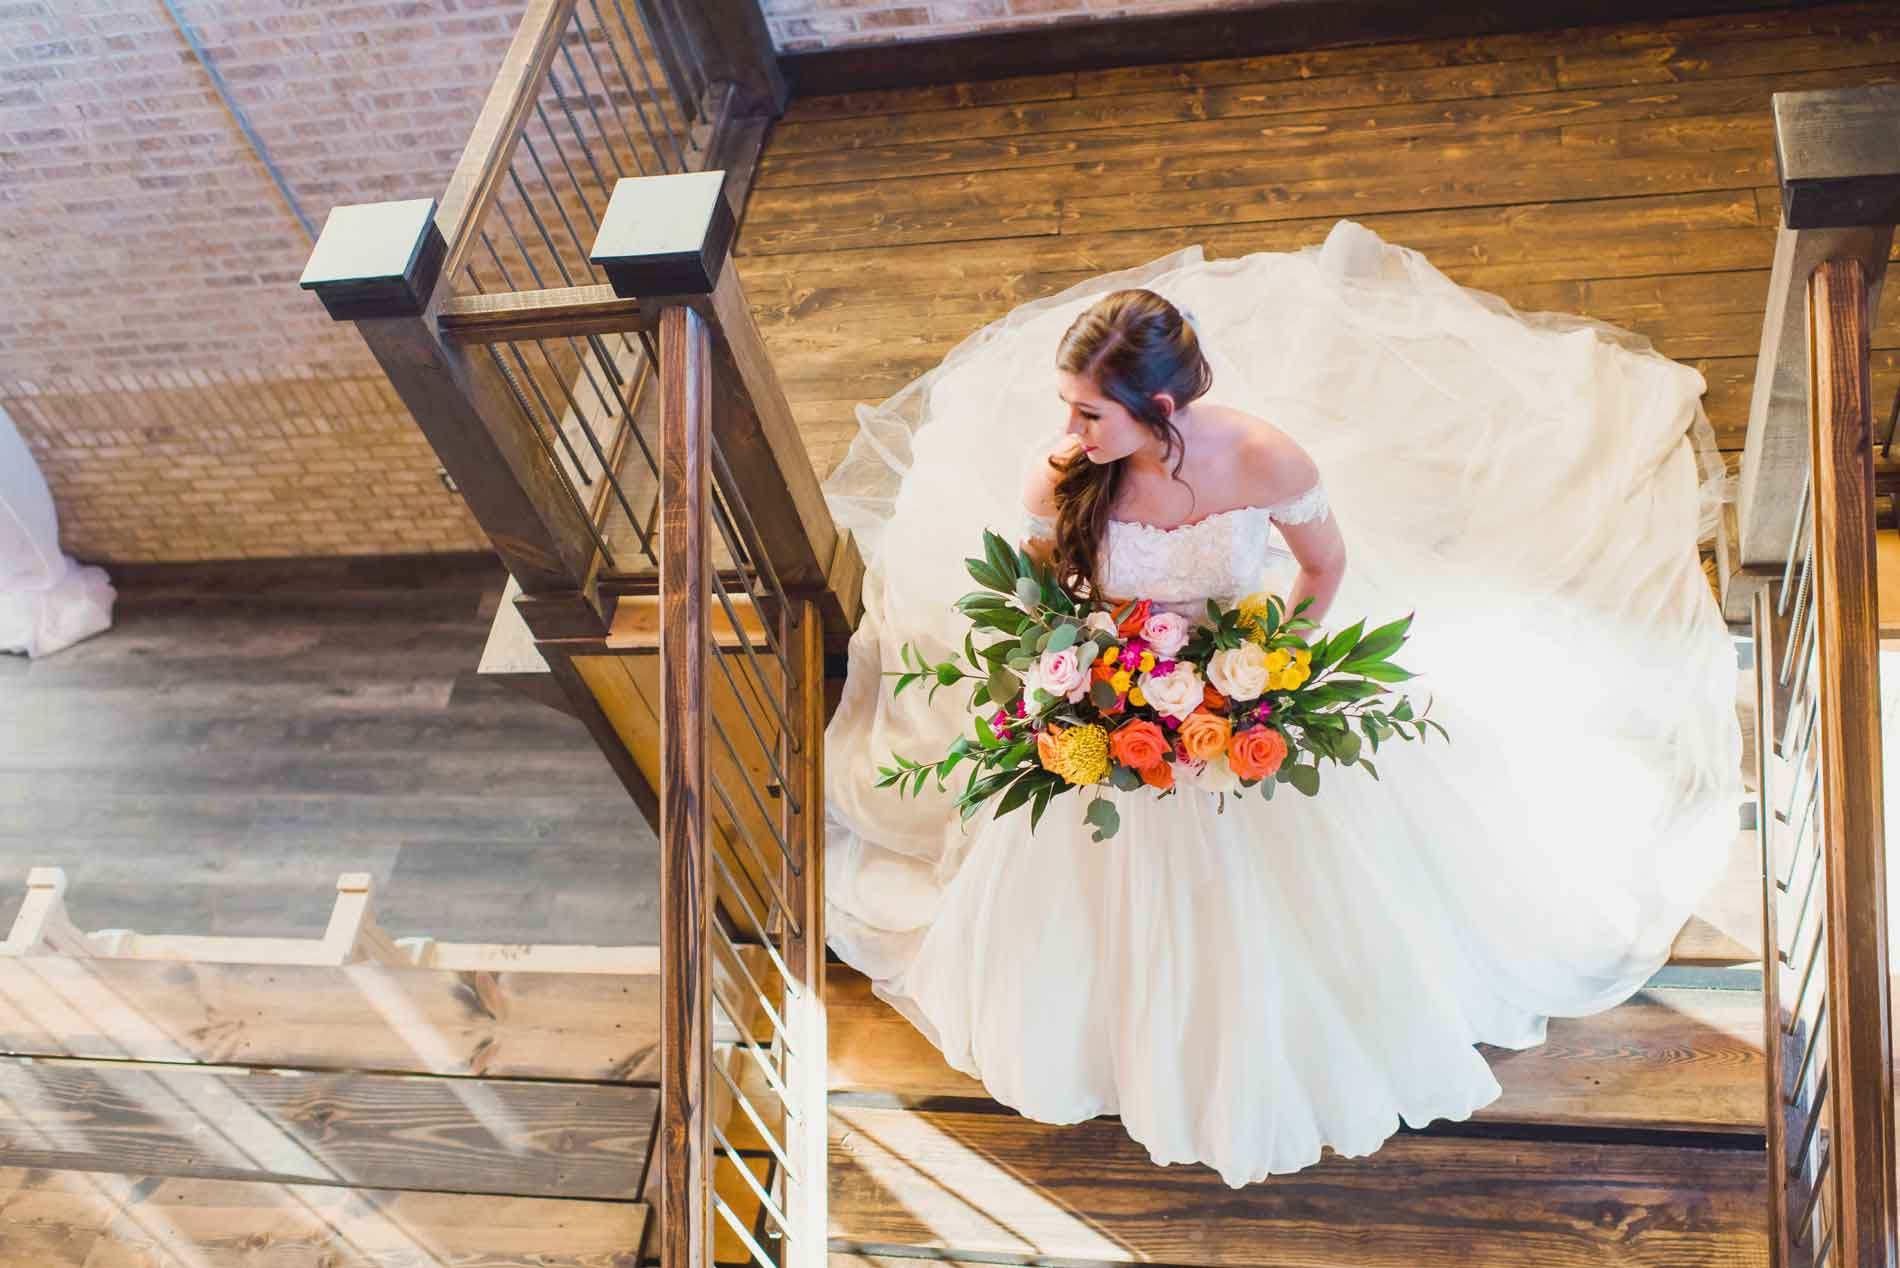 Bride walking down stair case with large bouquet of flowers